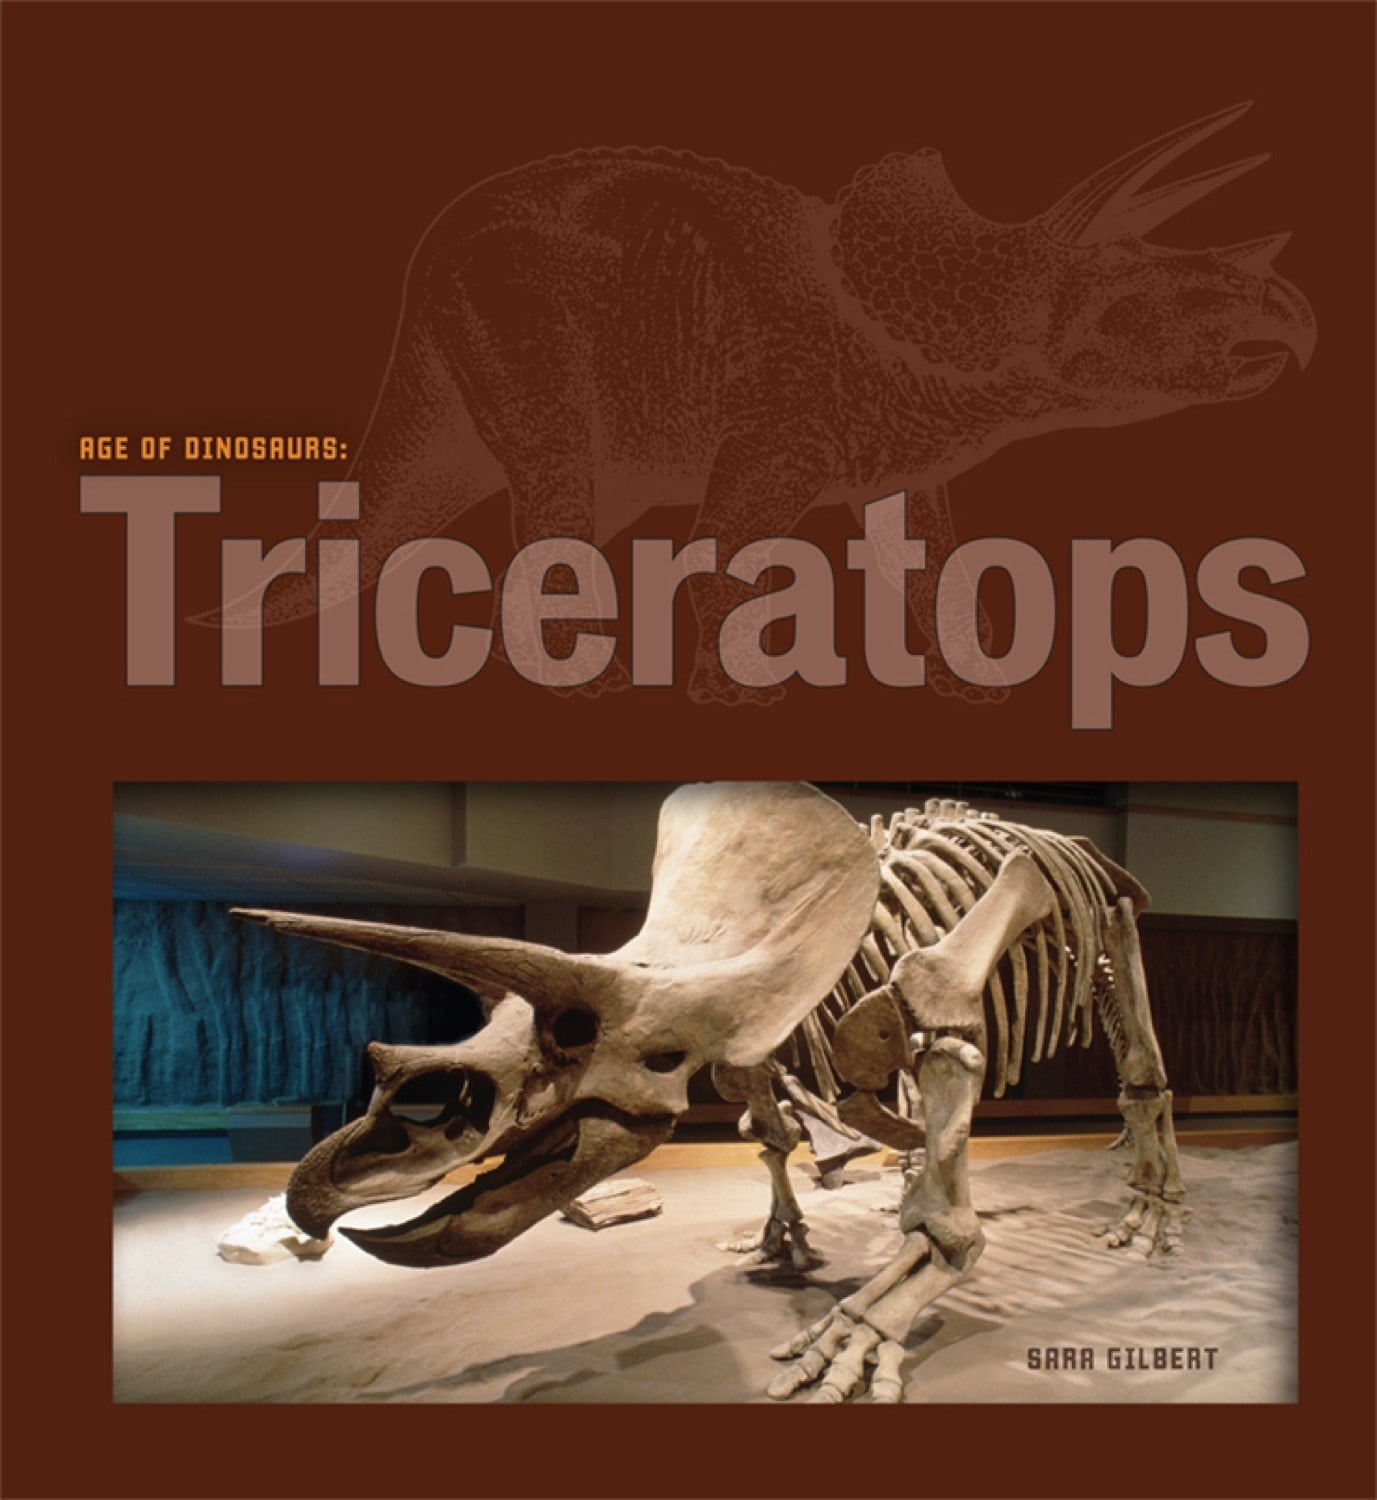 Age of Dinosaurs: Triceratops